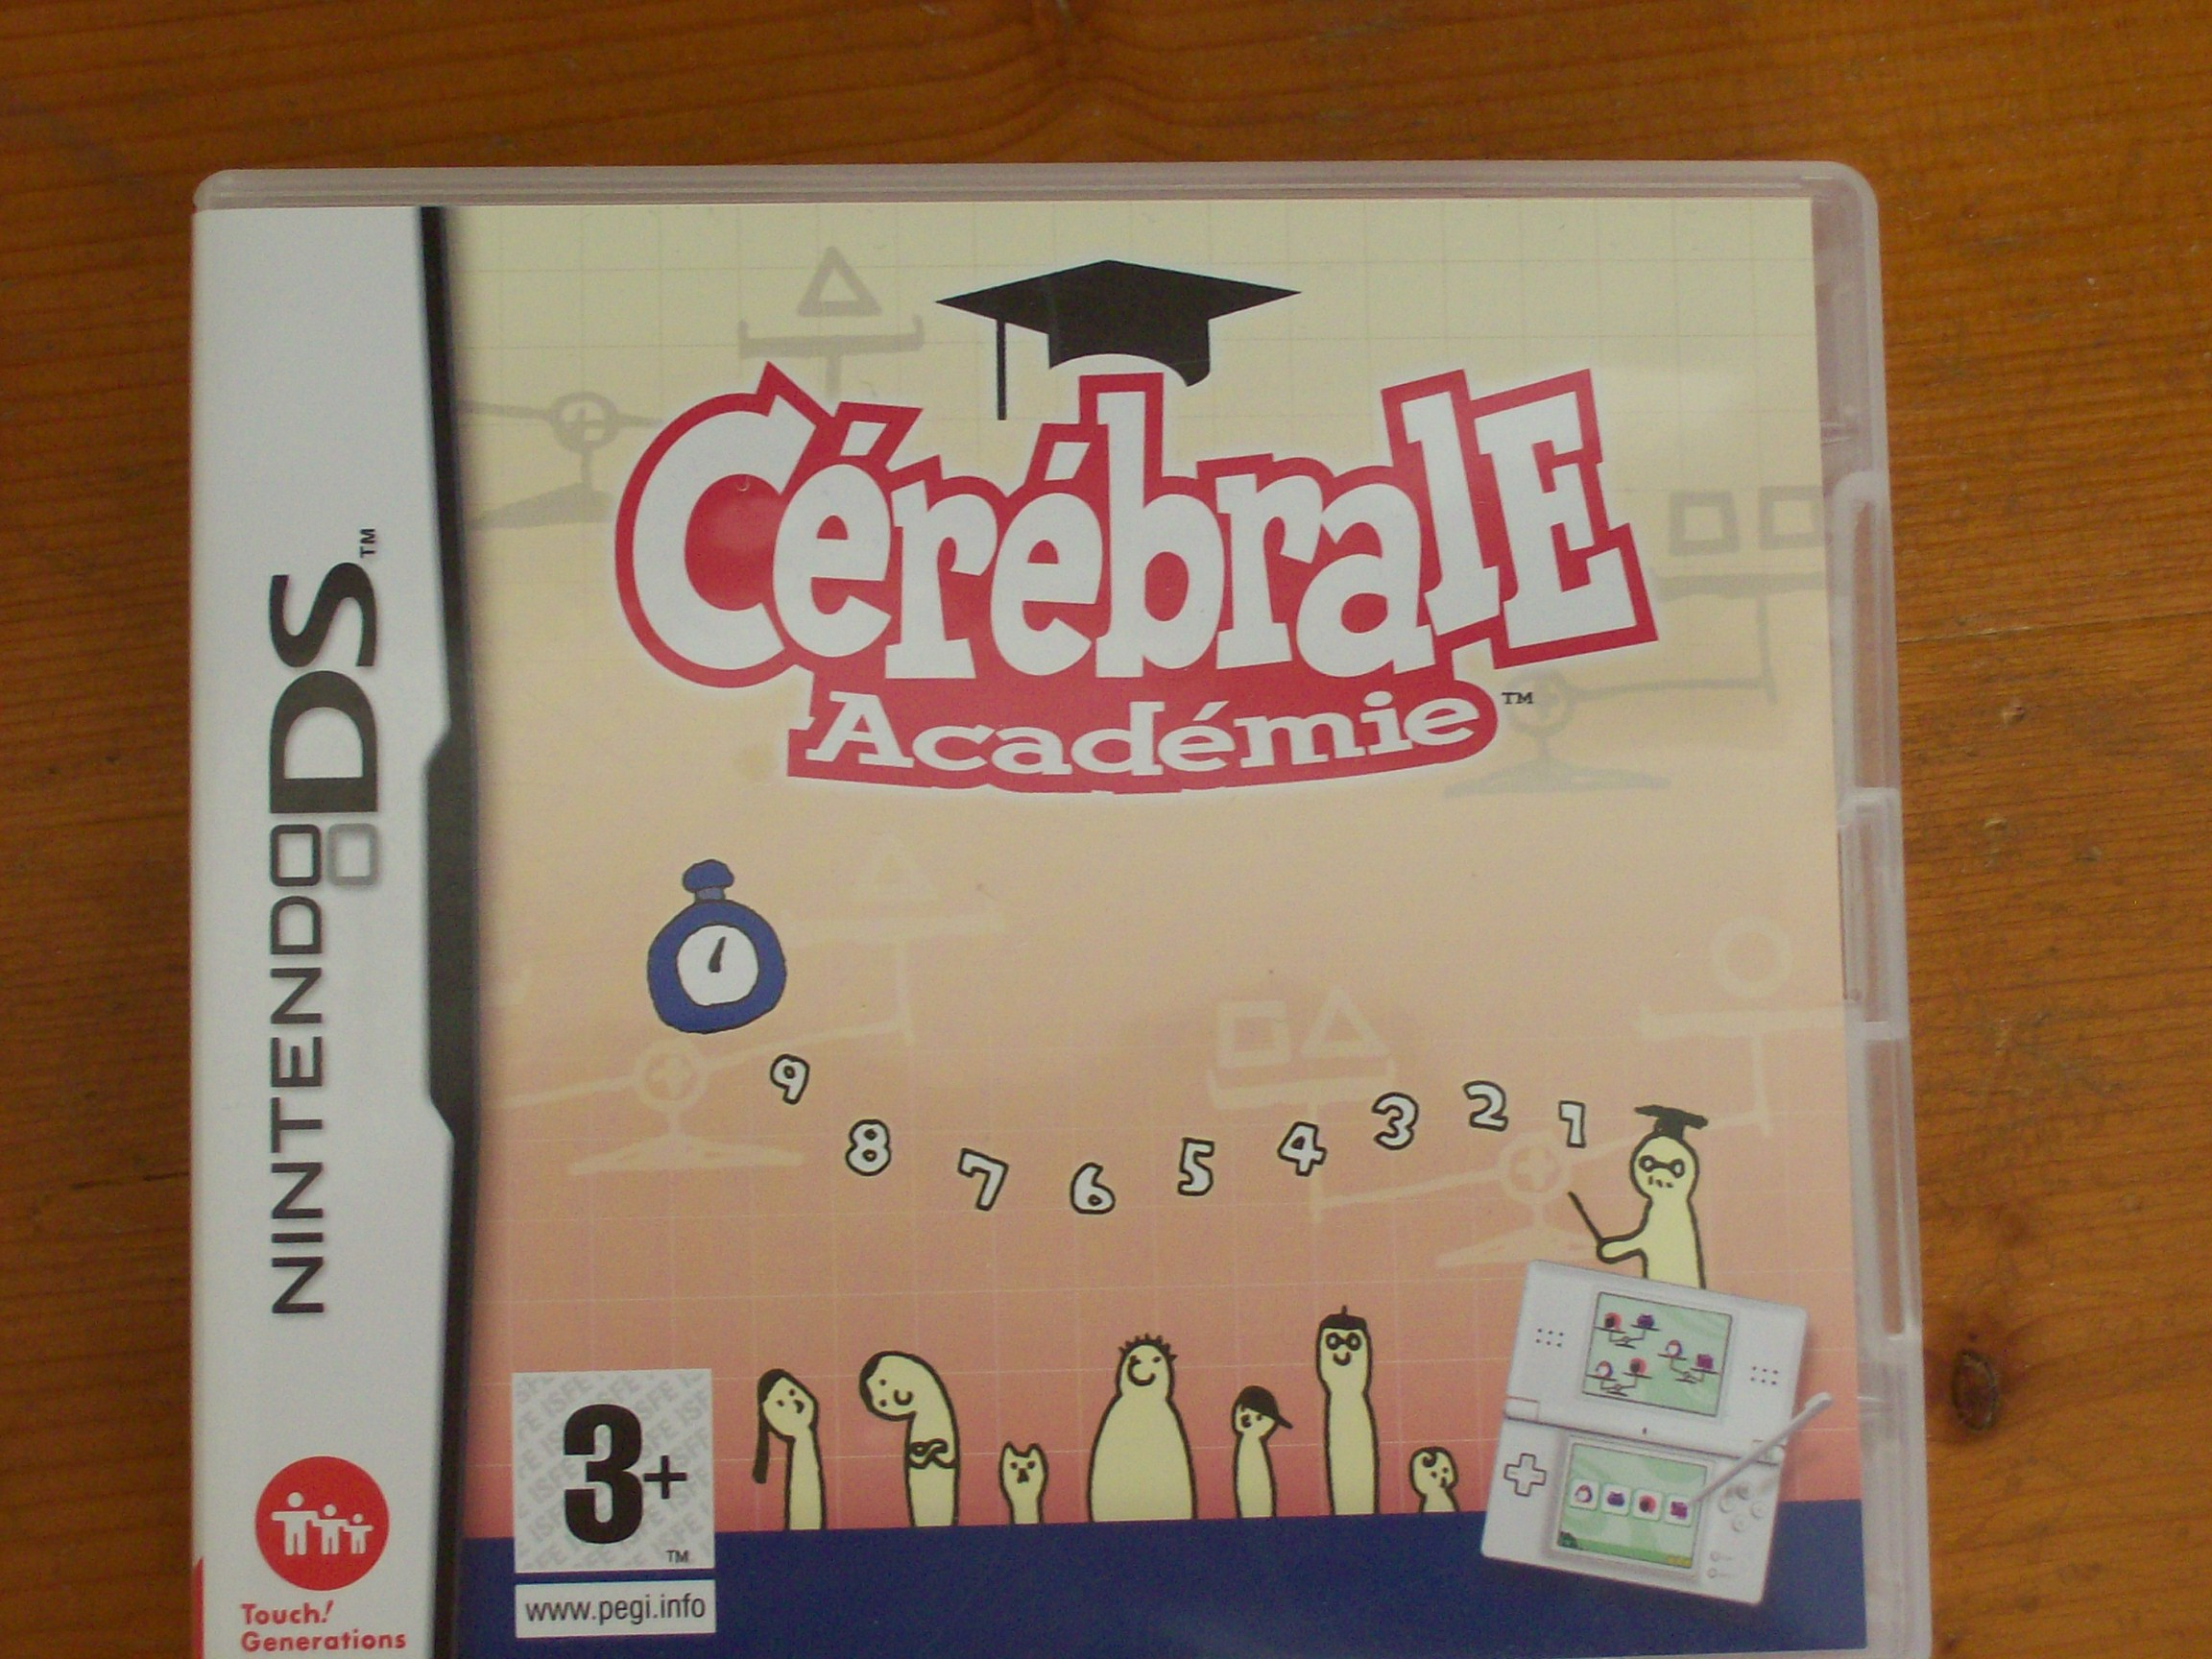 jeu nintendo ds cerebrale academie 15 jeu wii et nintendo ds a vendre lealucy photos. Black Bedroom Furniture Sets. Home Design Ideas